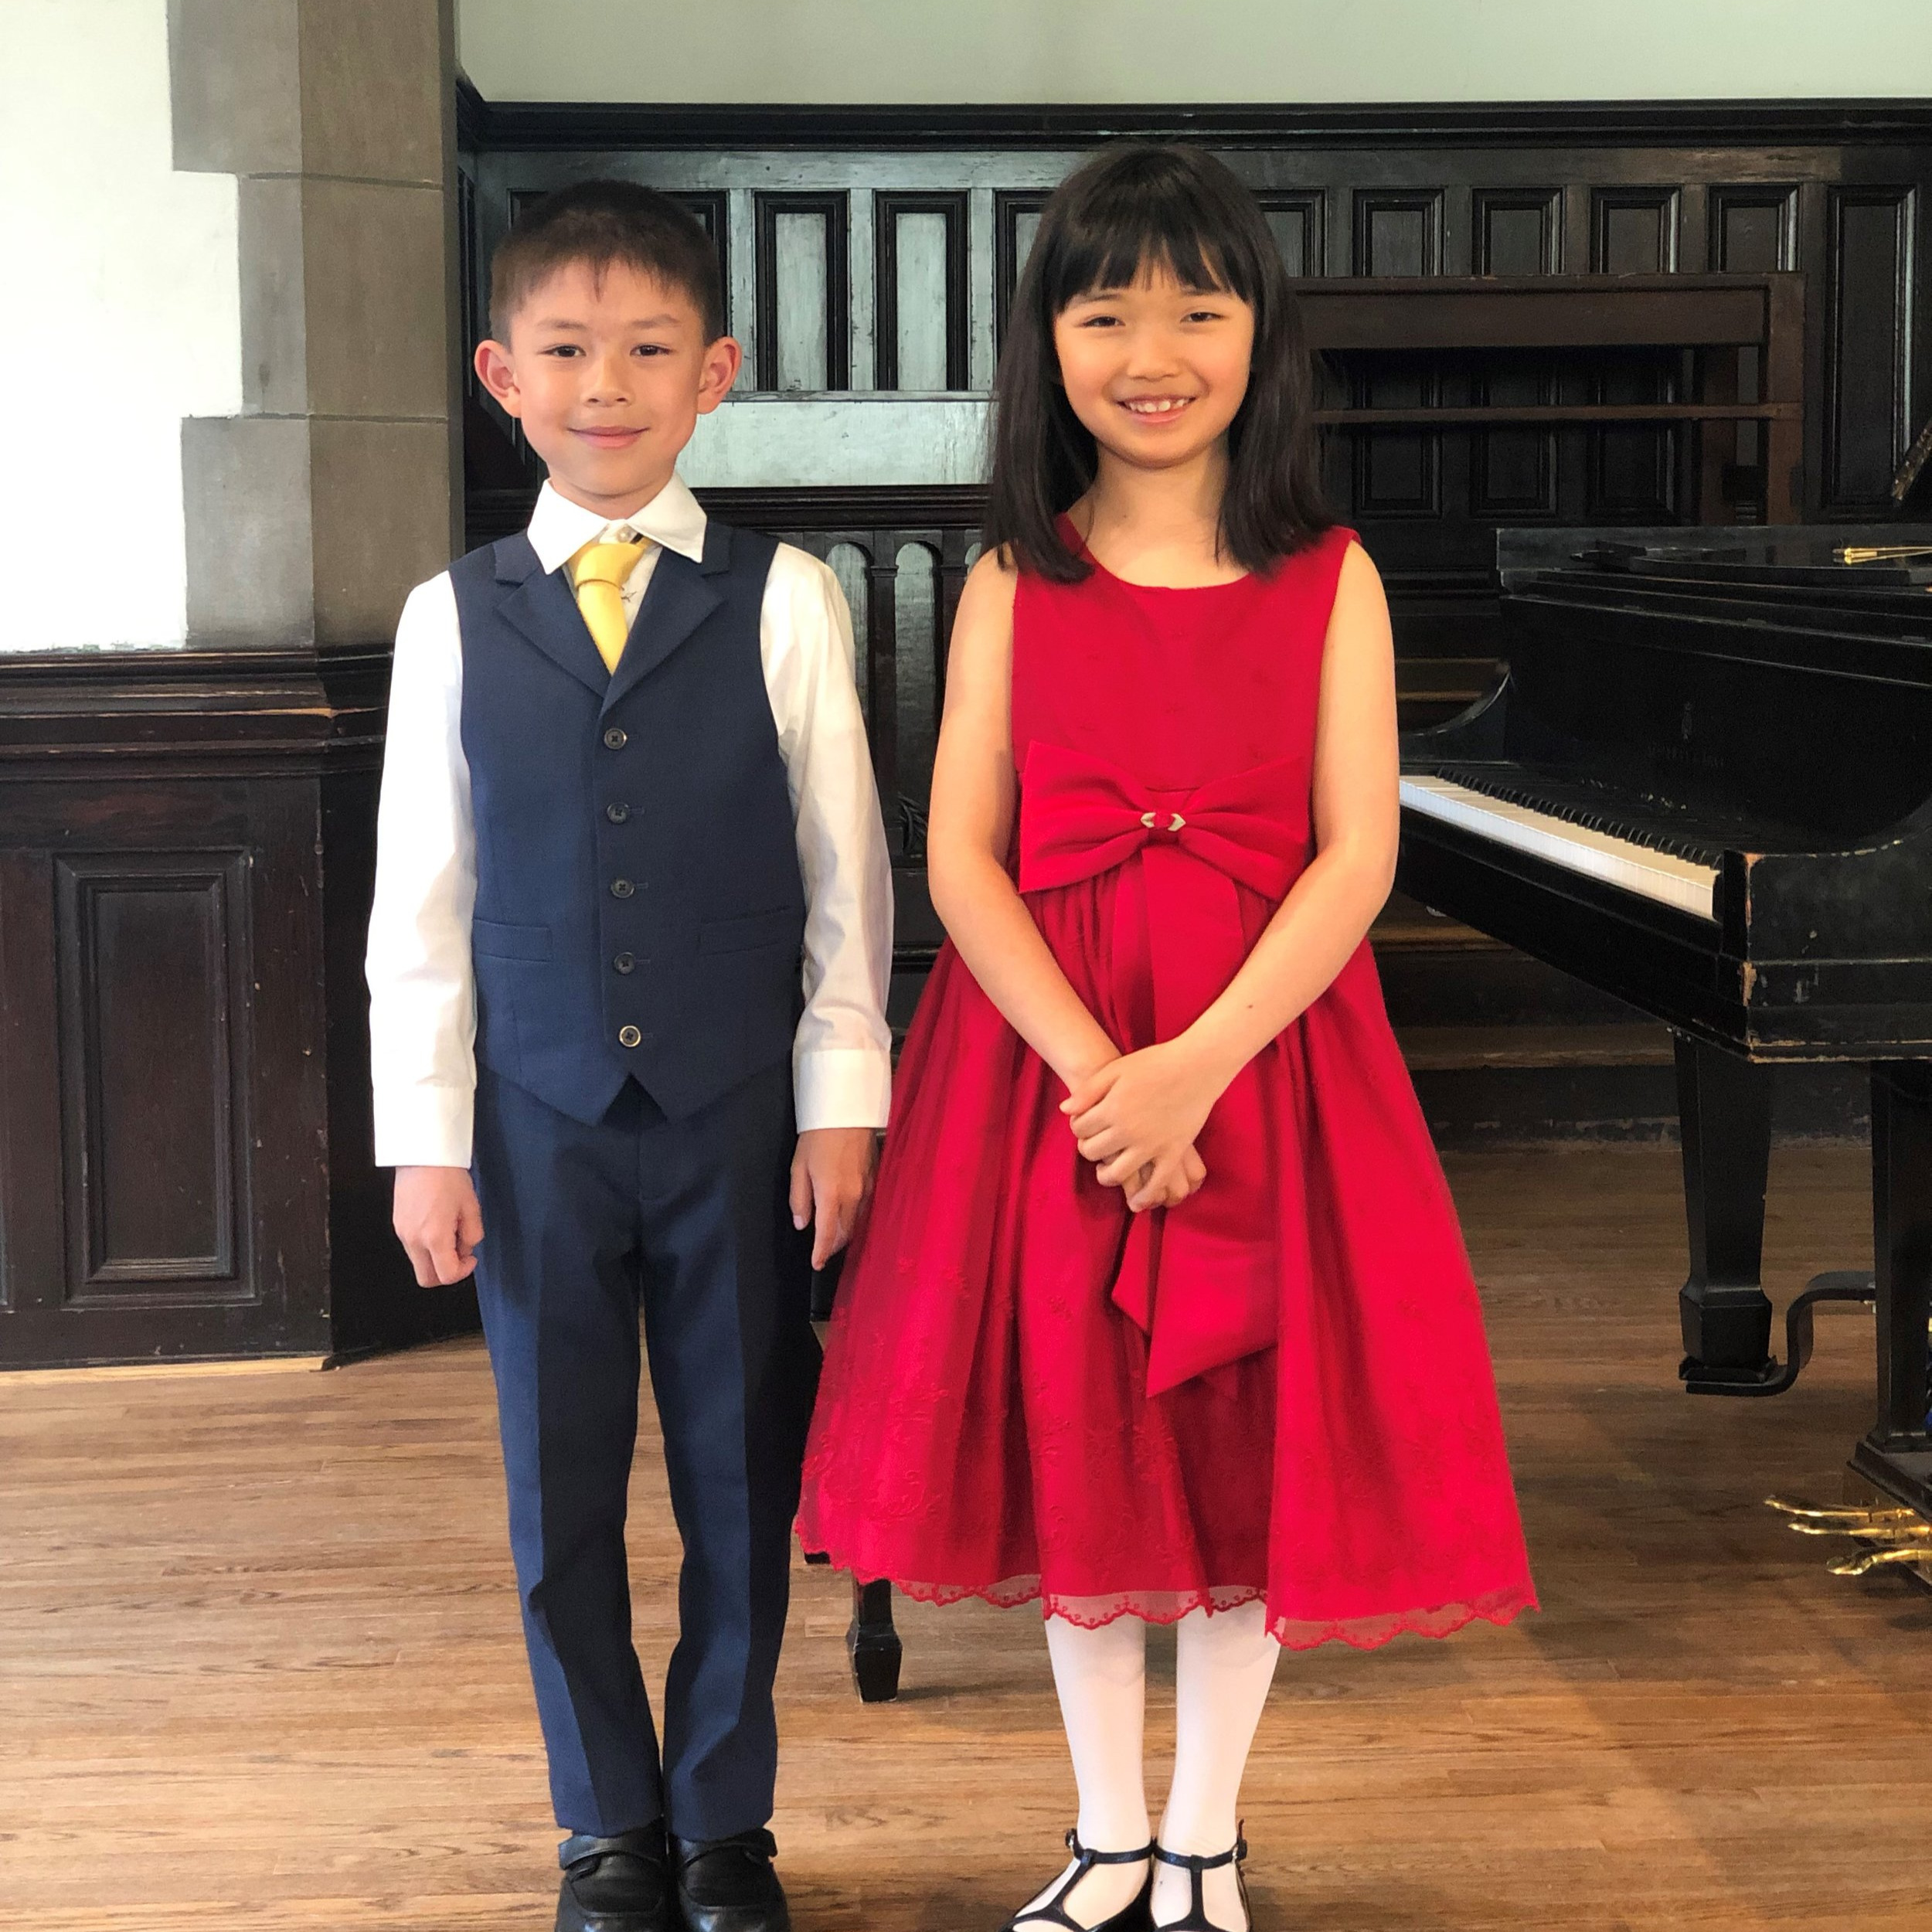 Encouraging young musicians - The Society of American Musicians hosts an annual competition each spring for cello, flute, guitar, piano, viola, and violin students age 19 and younger.